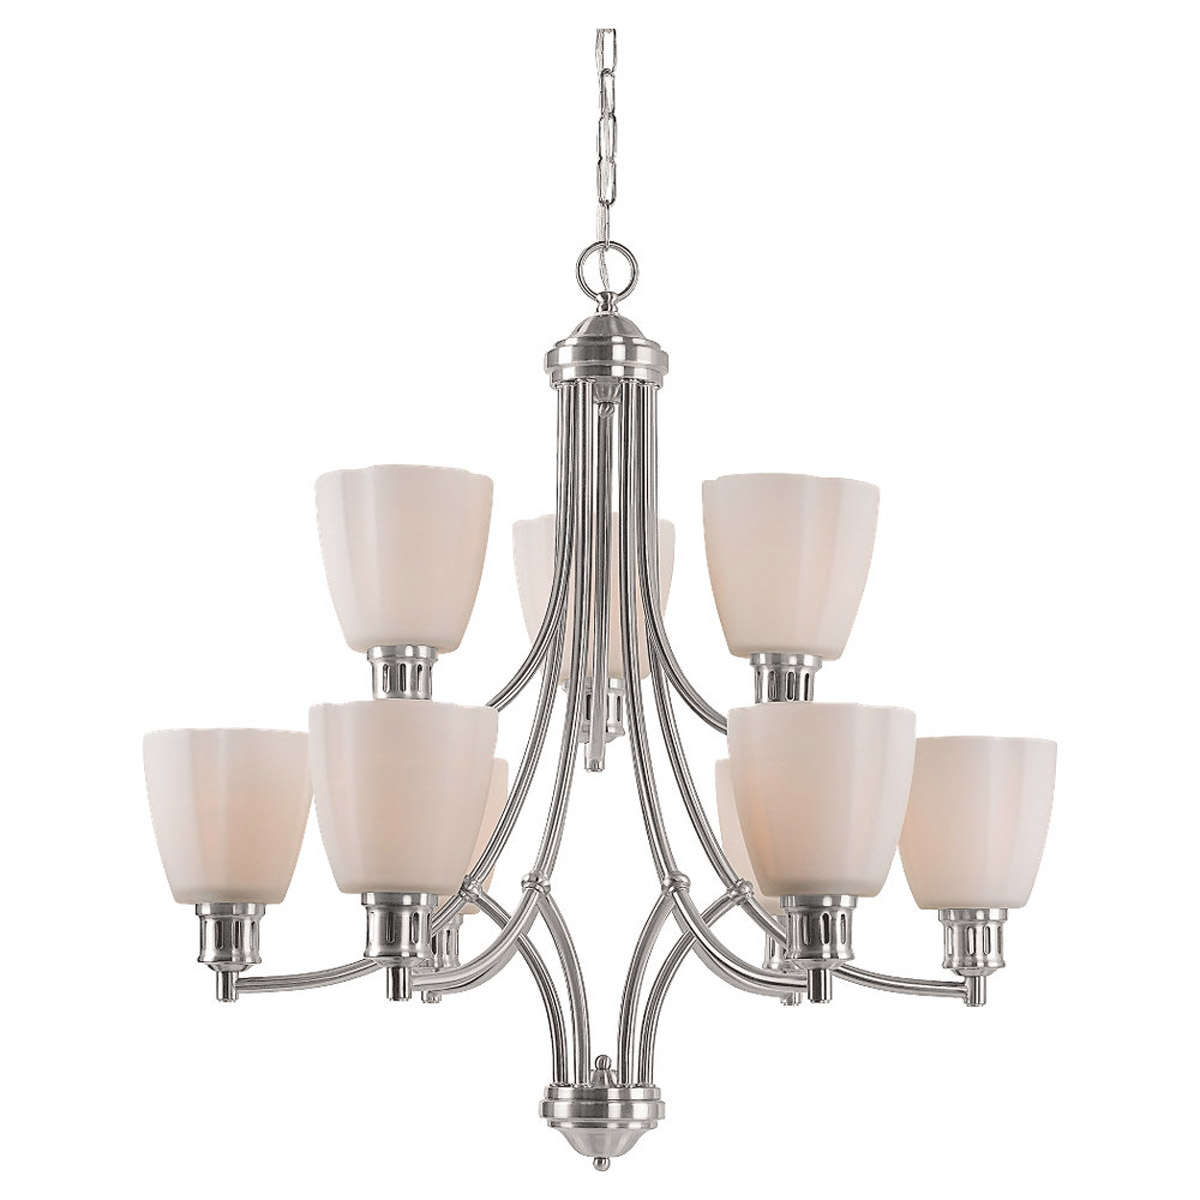 Sea Gull Lighting Century 9 Light Chandelier in Brushed Nickel 31477-962 photo